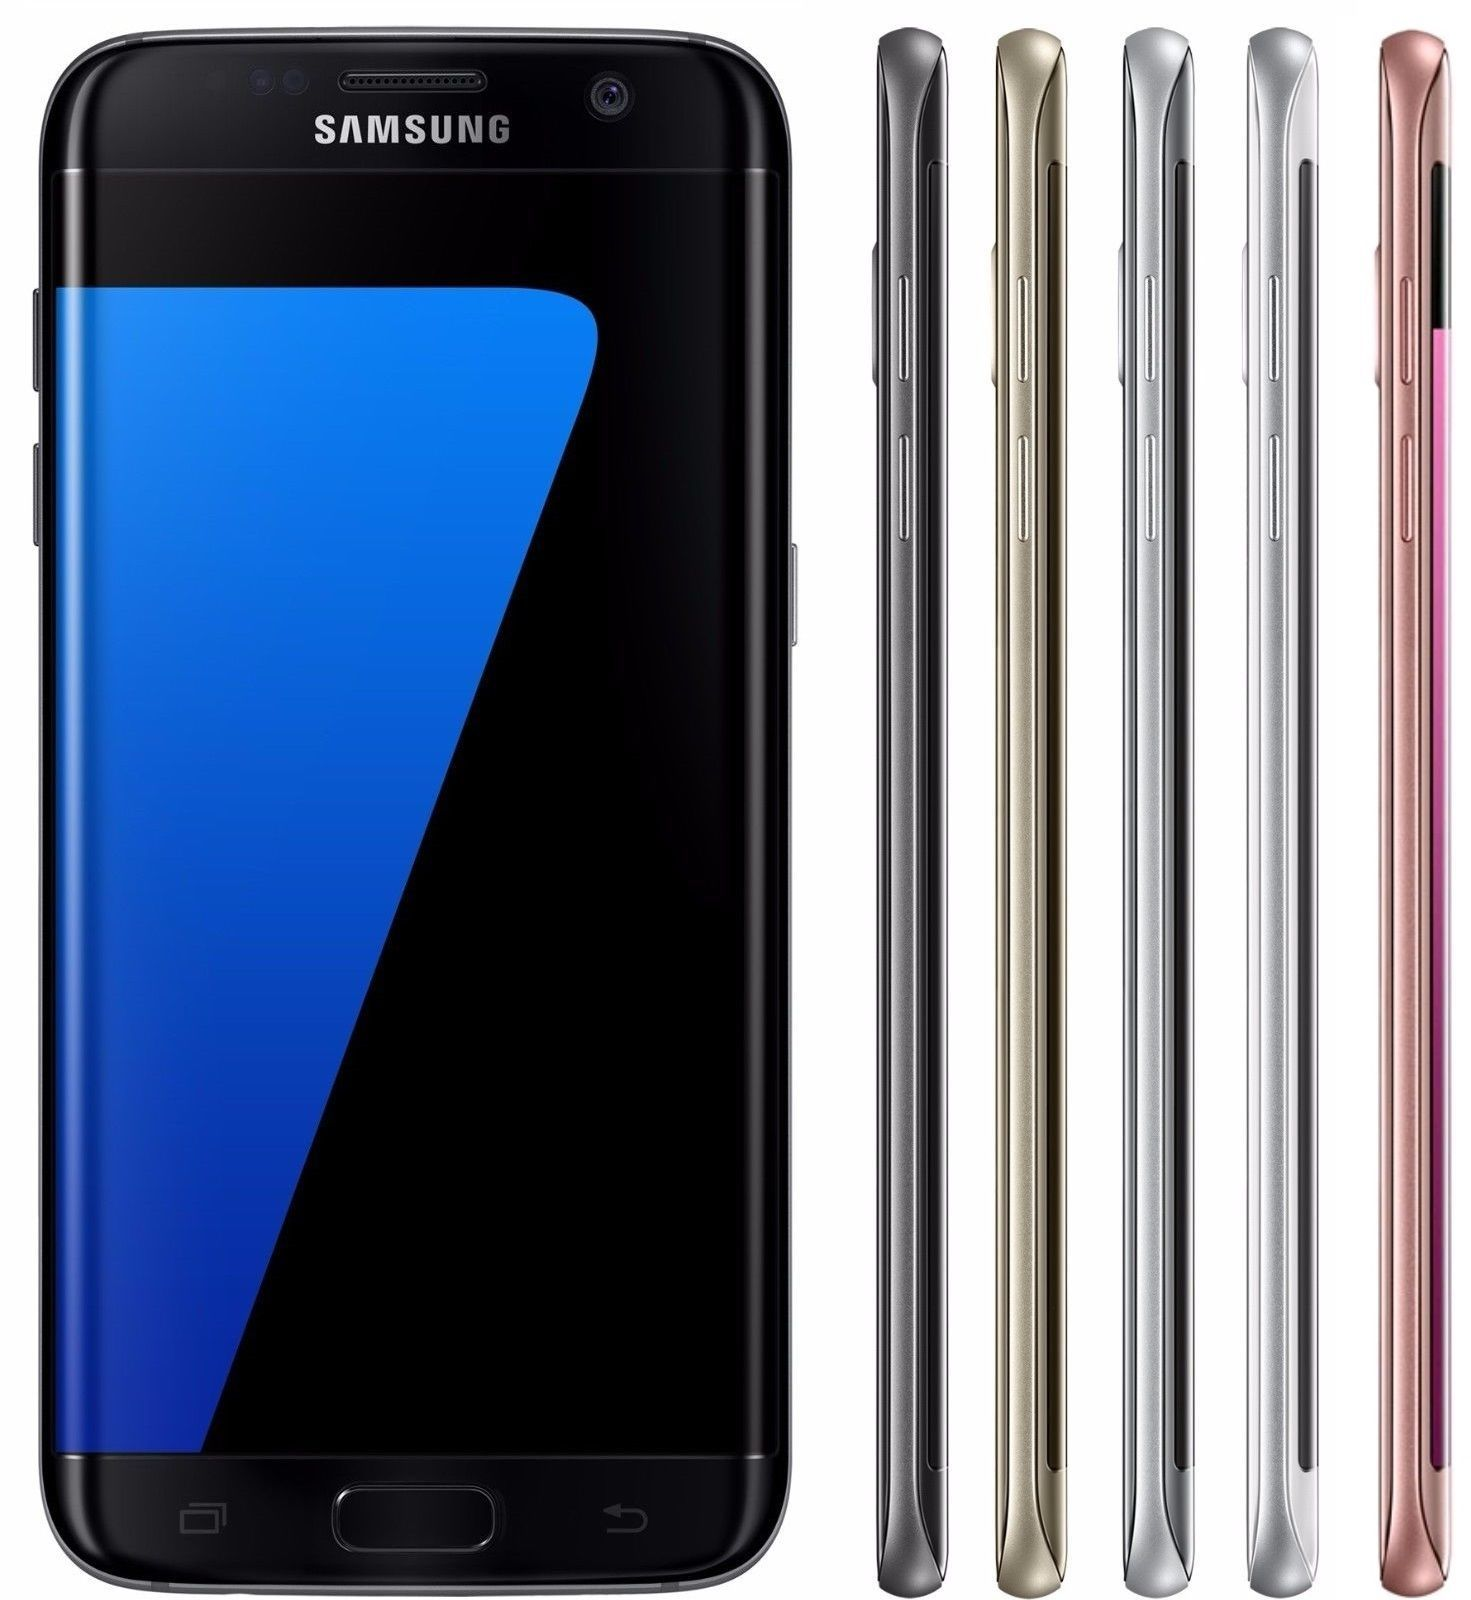 Samsung Galaxy S7 EDGE Duos SM-G935FD (FACTORY UNLOCKED) Black Blue Silver Gold  http://i.ebayimg.com/images/g/yHUAAOSwgZ1XvcYn/s-l1600.jpg      Item specifics     Condition:       New: A brand-new, unused, unopened, undamaged item in its original packaging (where packaging is     ... https://www.shopnet.one/samsung-galaxy-s7-edge-duos-sm-g93